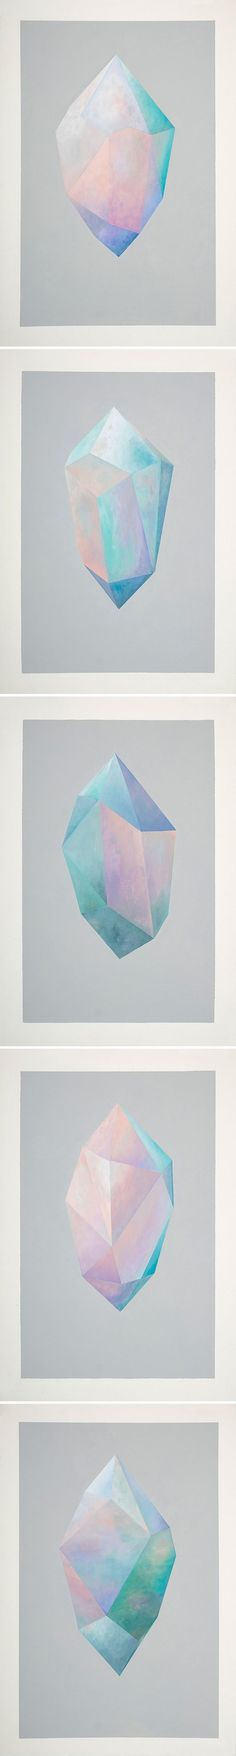 NEW paintings by rebecca chaperon